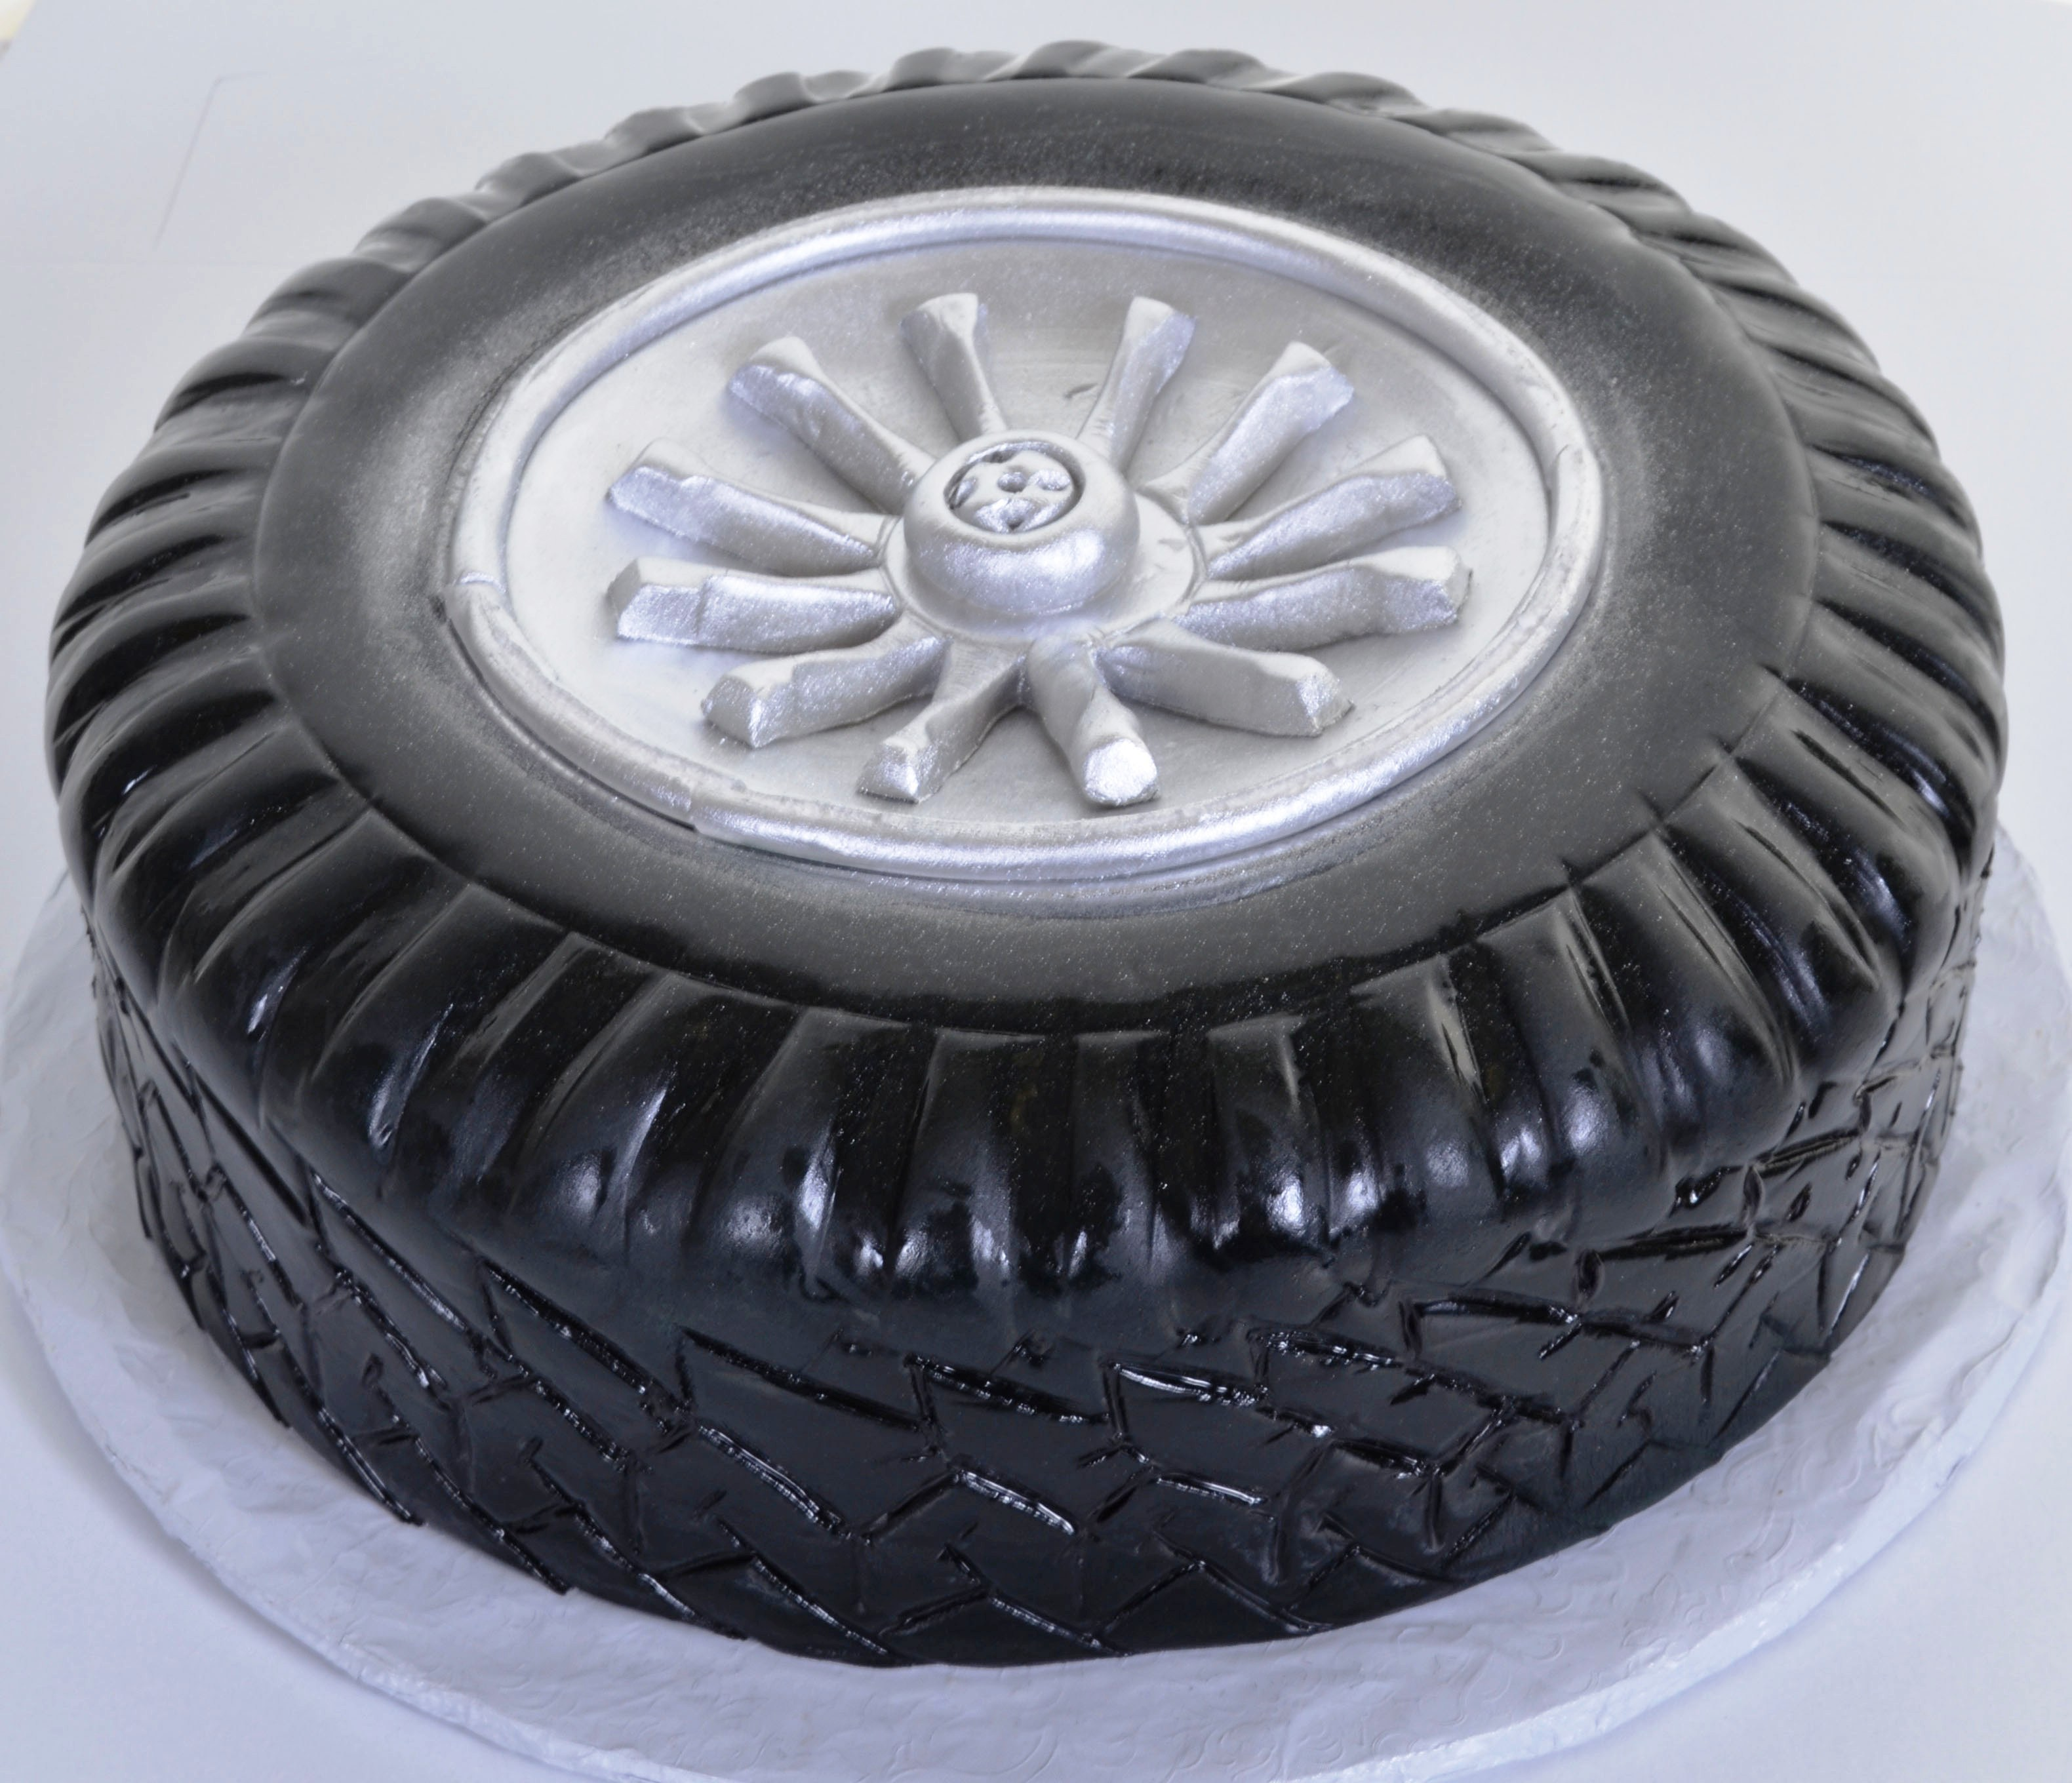 tire wedding cake 747 got wheels wedding cakes fresh bakery pastry 21031